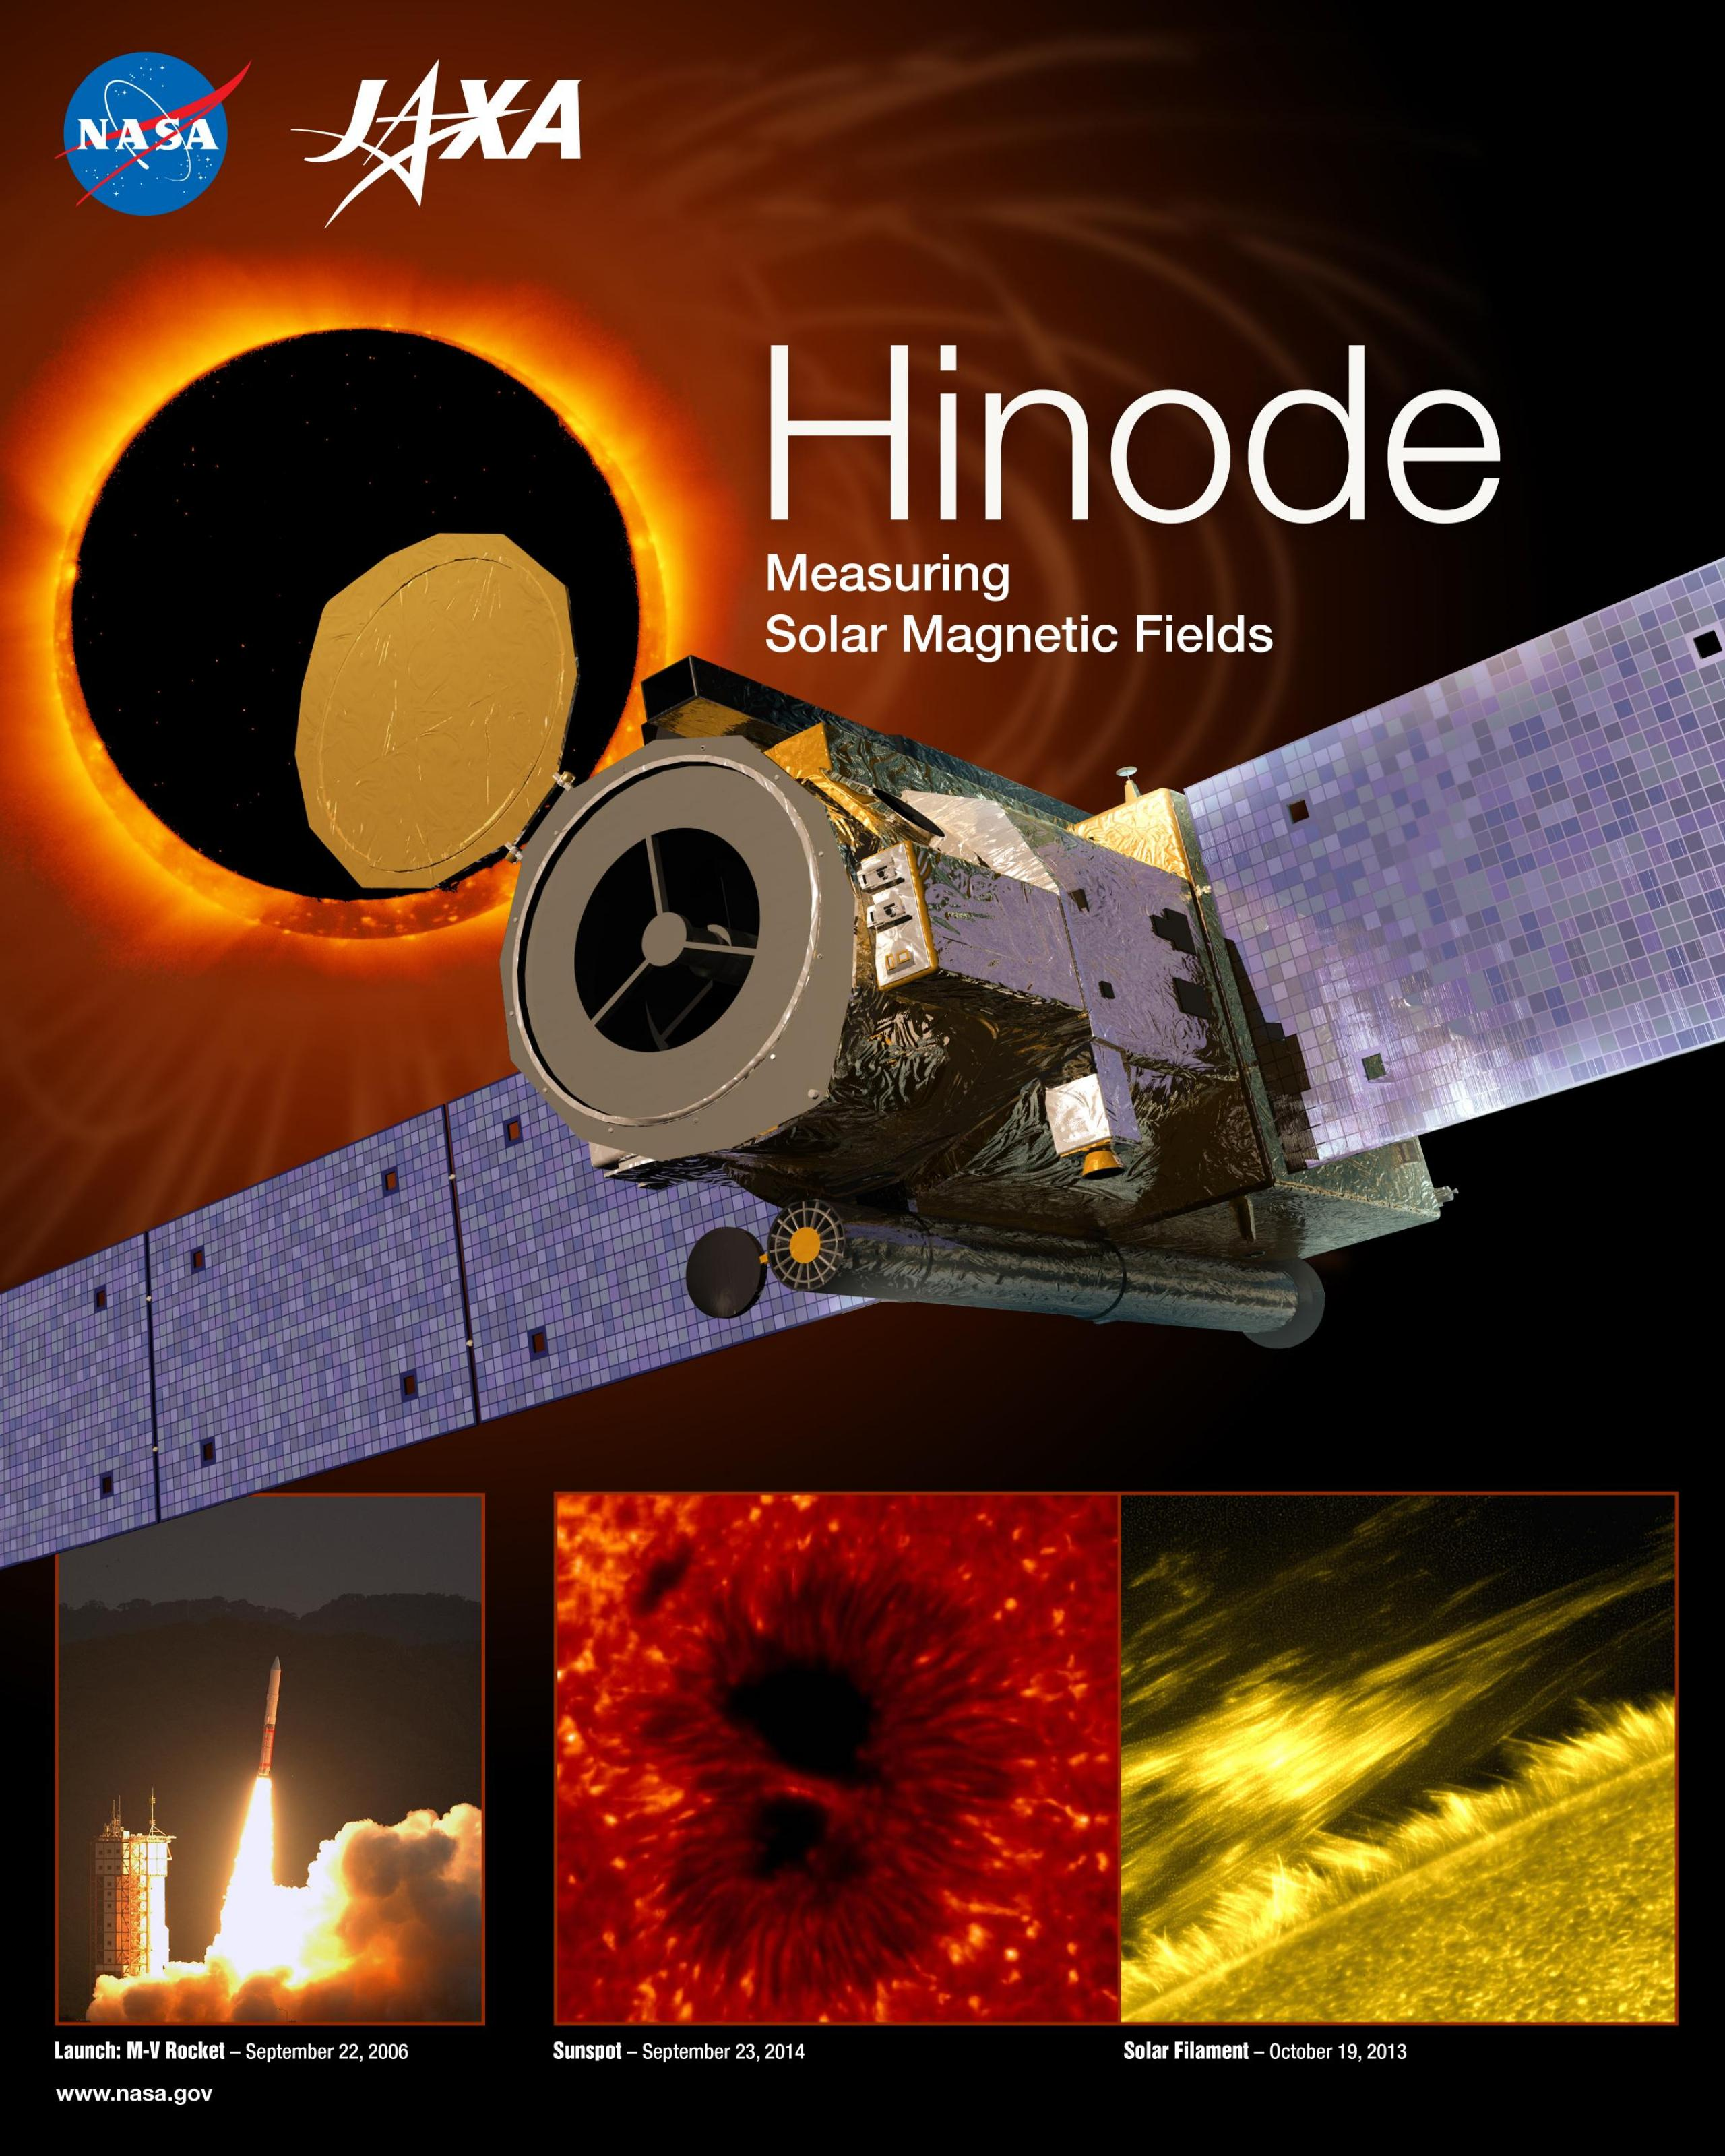 Hinode mission poster with satellite, sun and heliophysics imagery